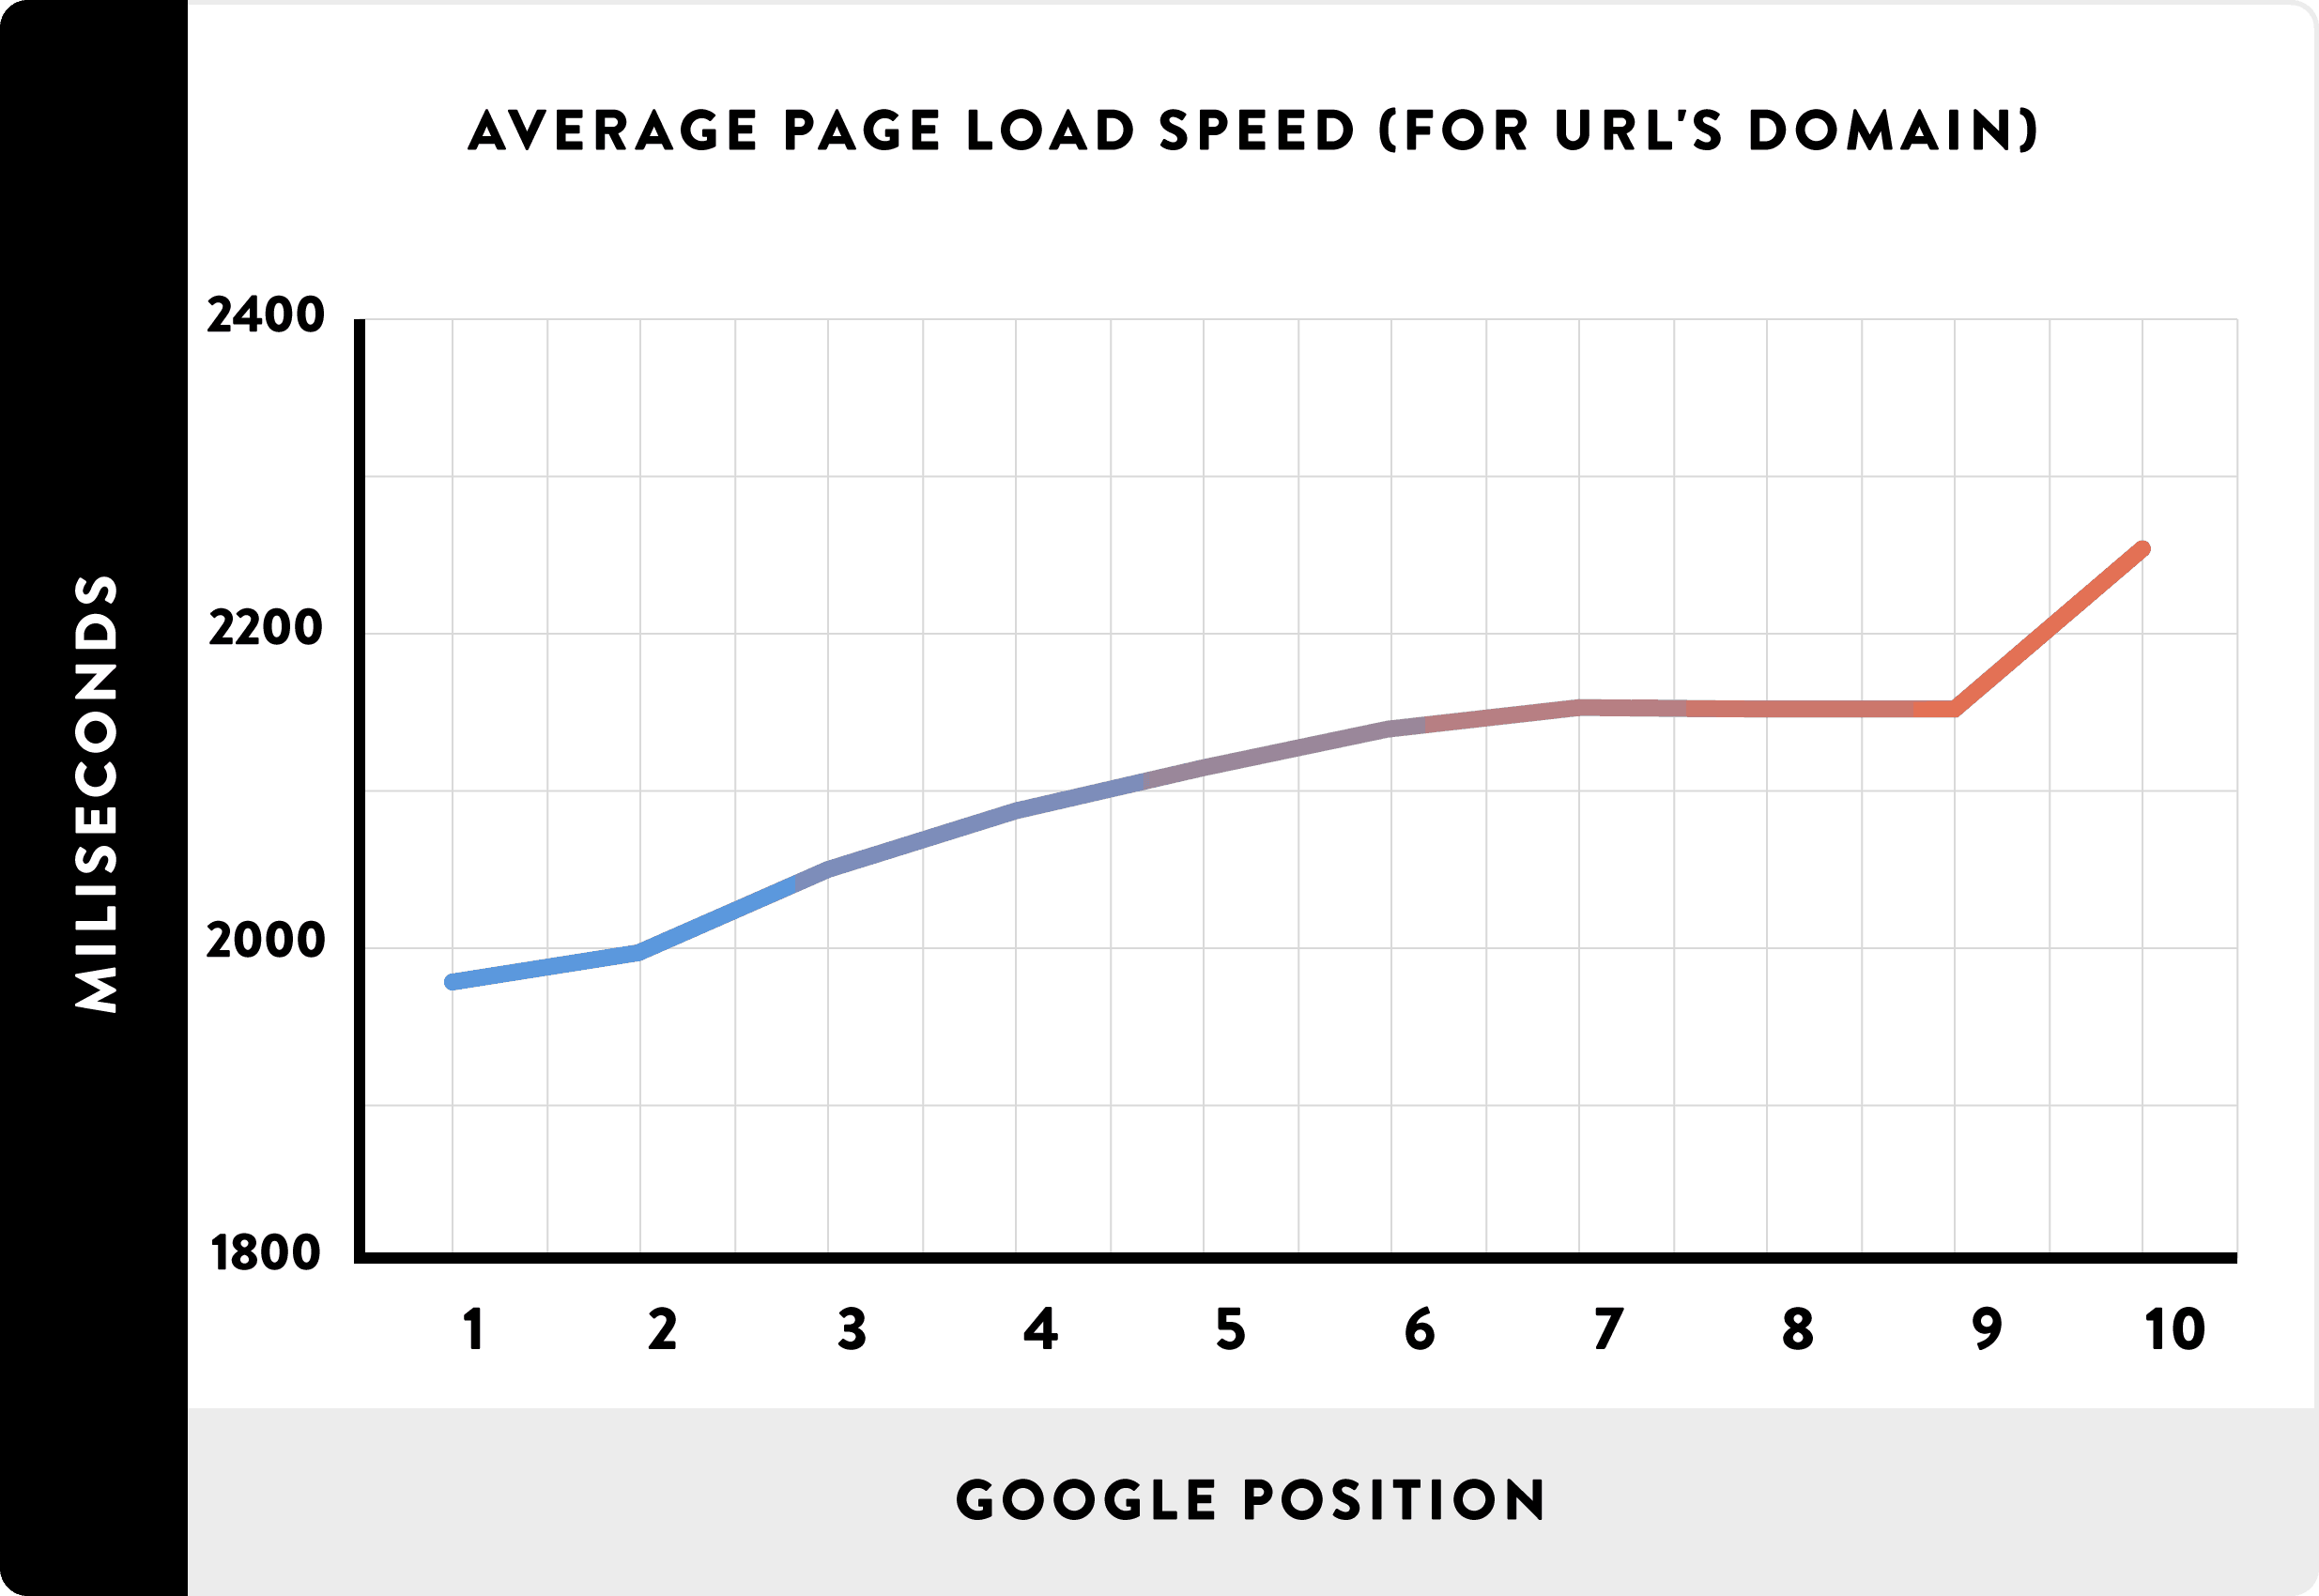 Graph showing Google ranking position based on average page load speed